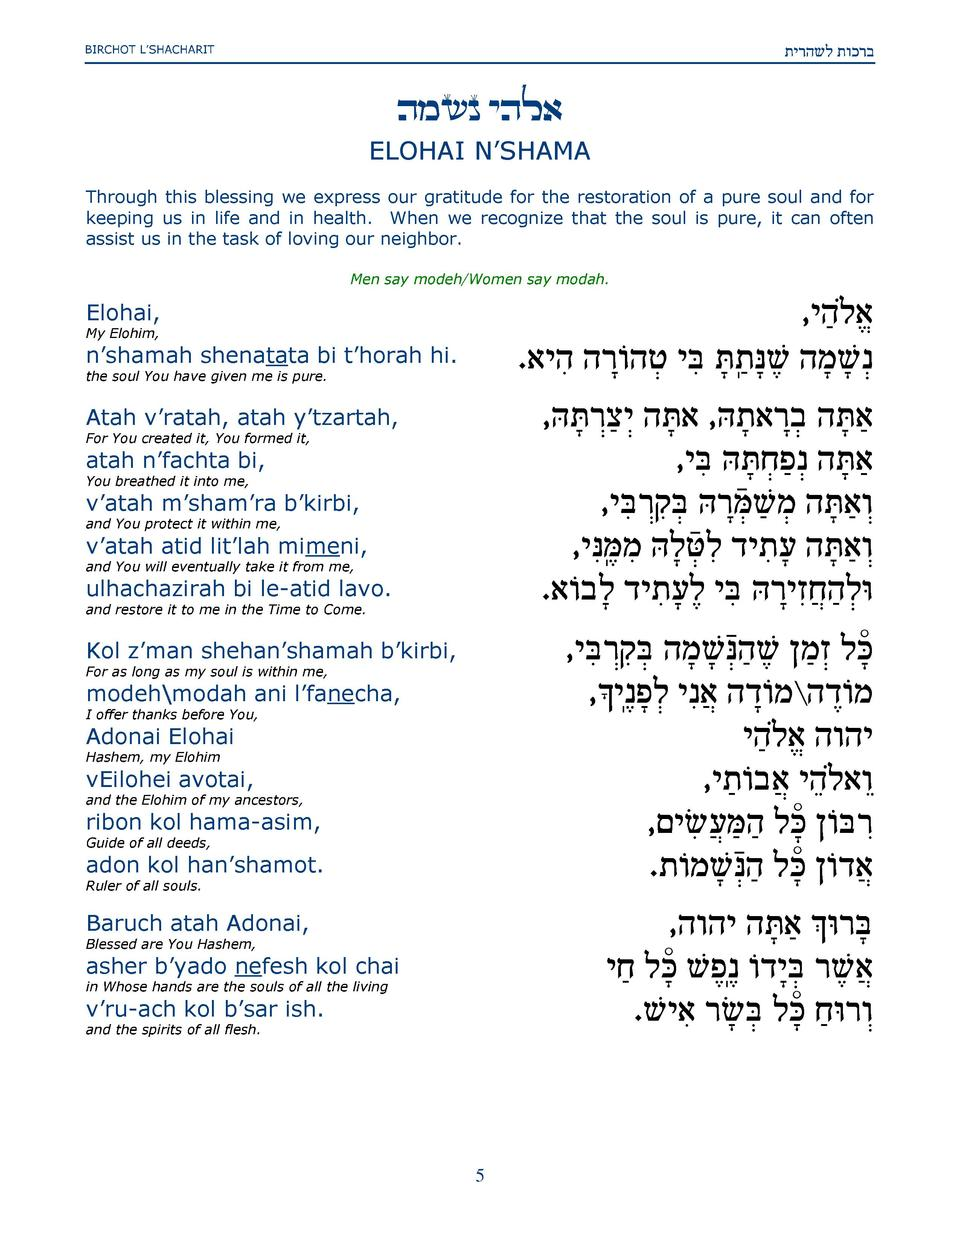 zixdyl zekxa  BIRCHOT L   SHACHARIT  hmsn yhla ELOHAI N   SHAMA Through this blessing we express our gratitude for the res...